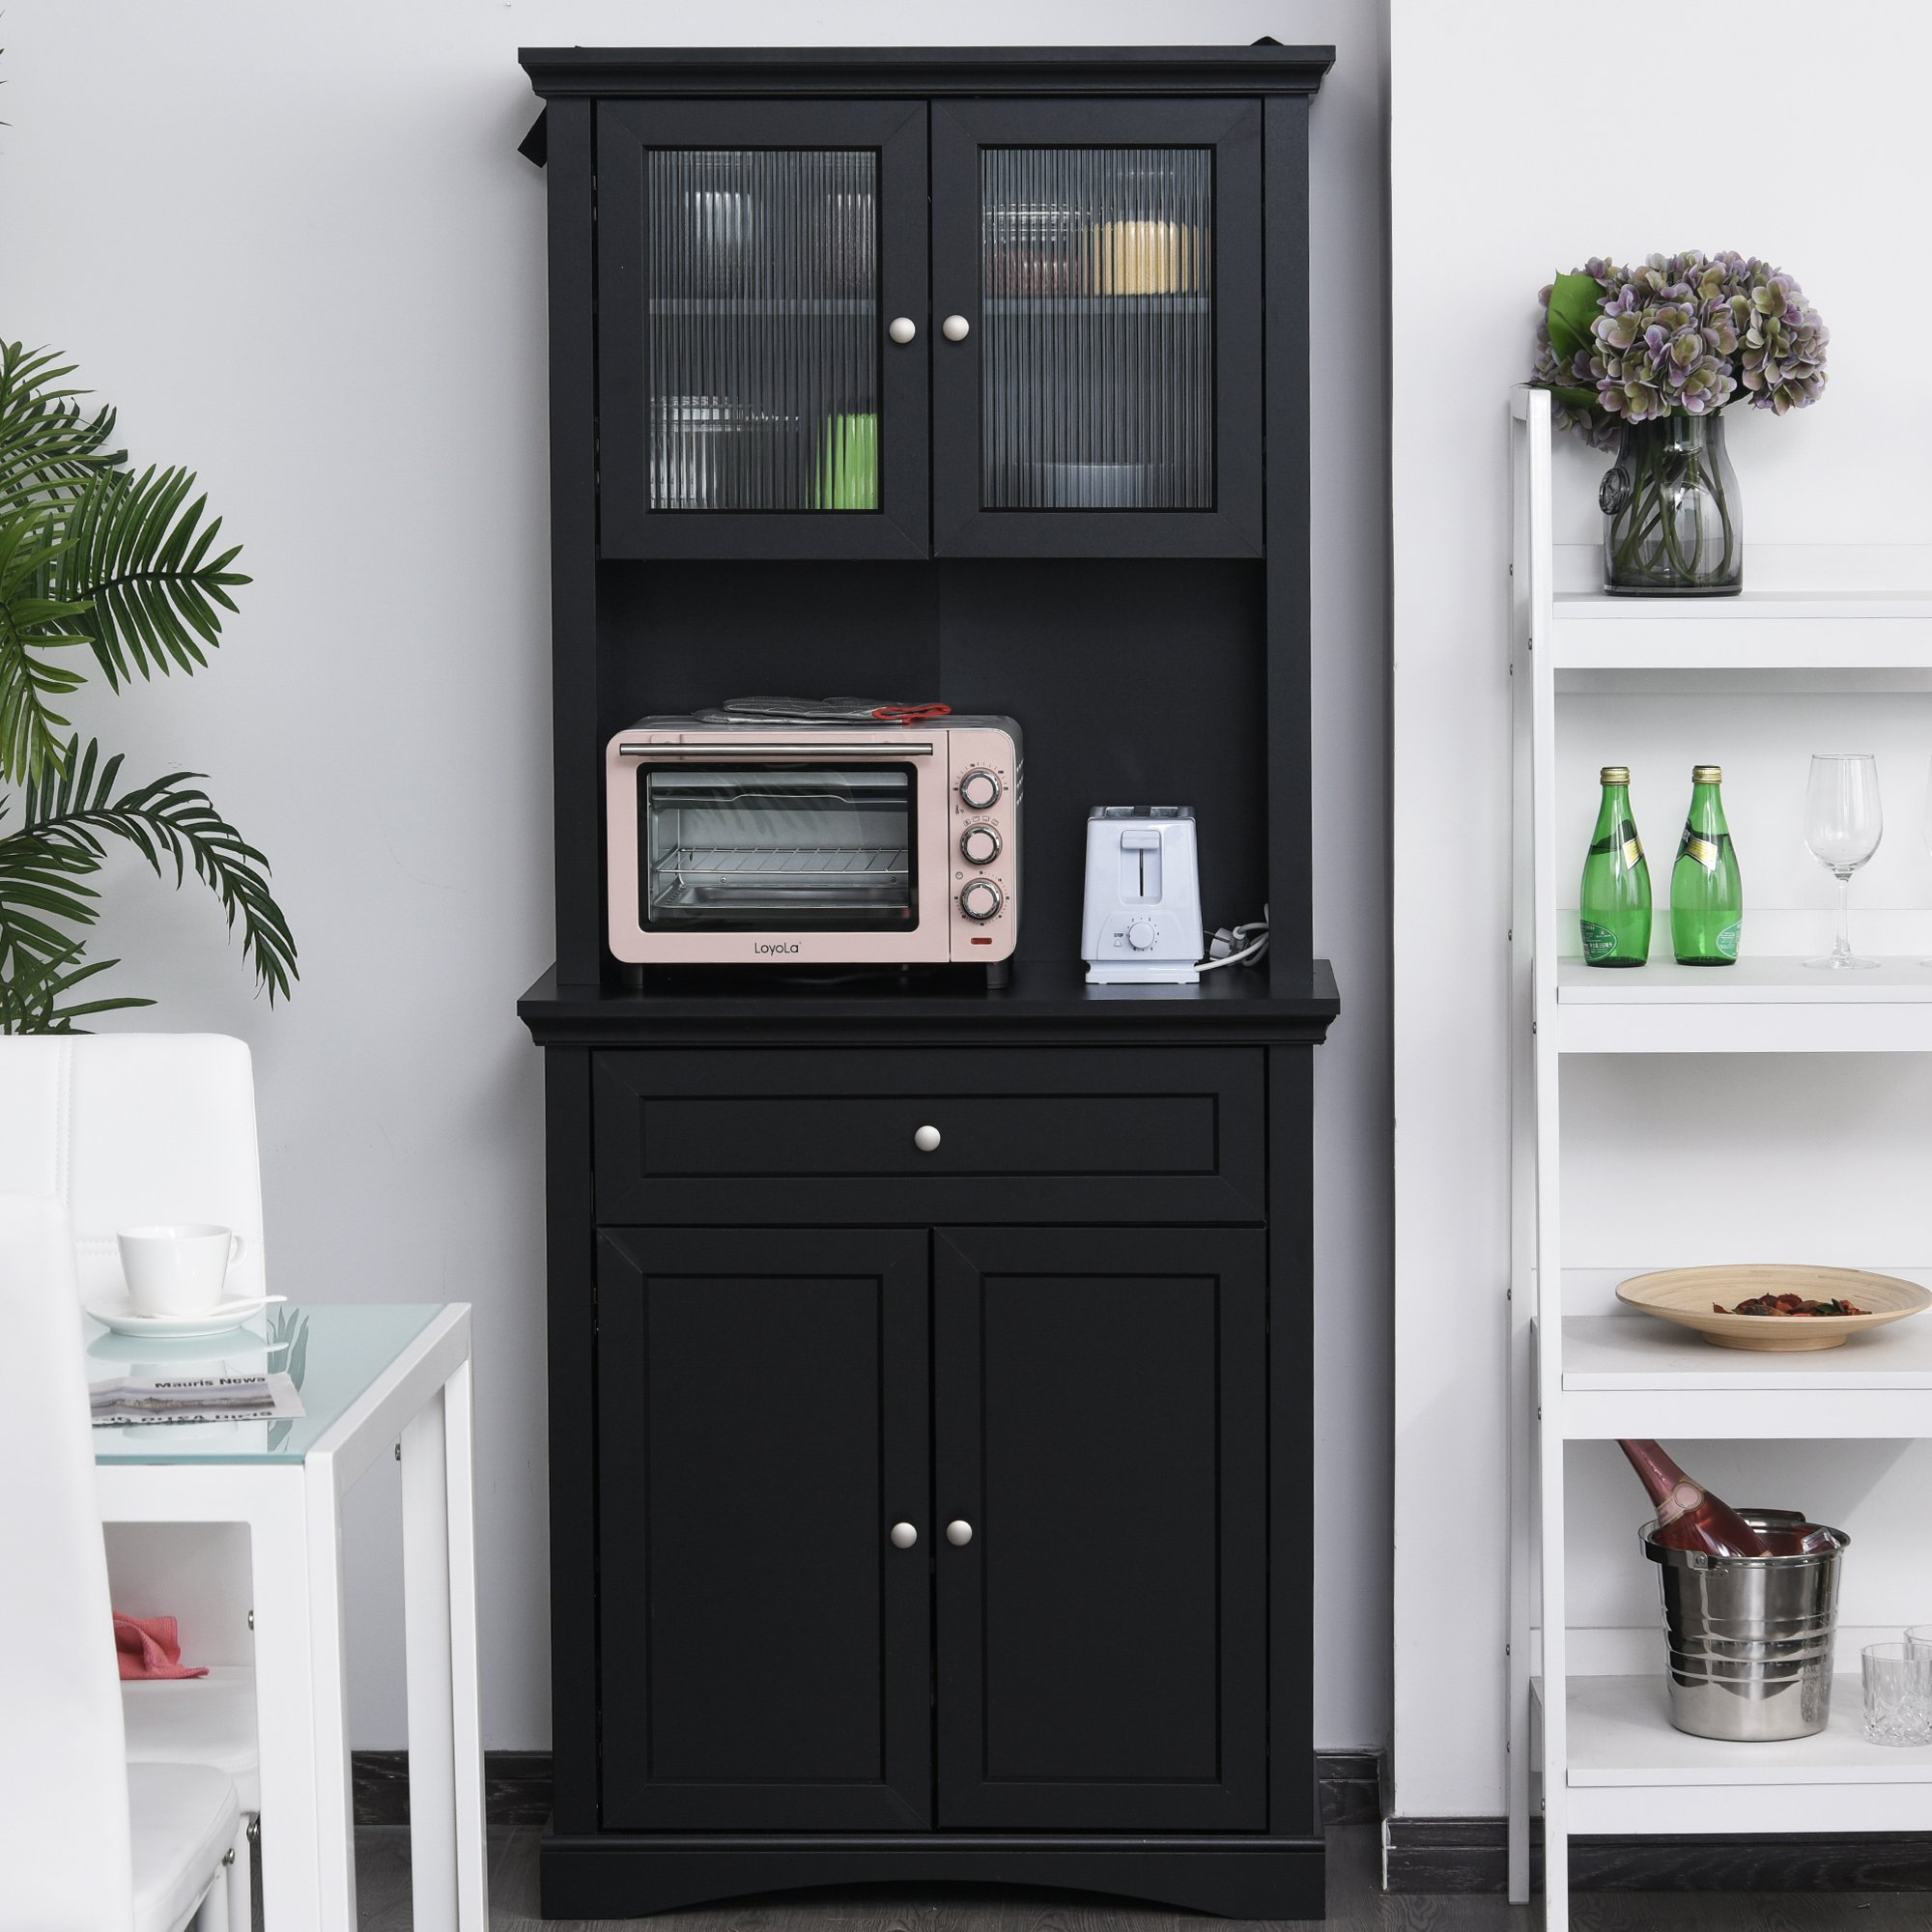 Homcom Free Standing Kitchen Pantry Traditional Tall Kitchen Pantry Cabinet Cupboard Storage Pantry Cabinet With Doors And Adjustable Shelving Black Pantry Buffet Aosom